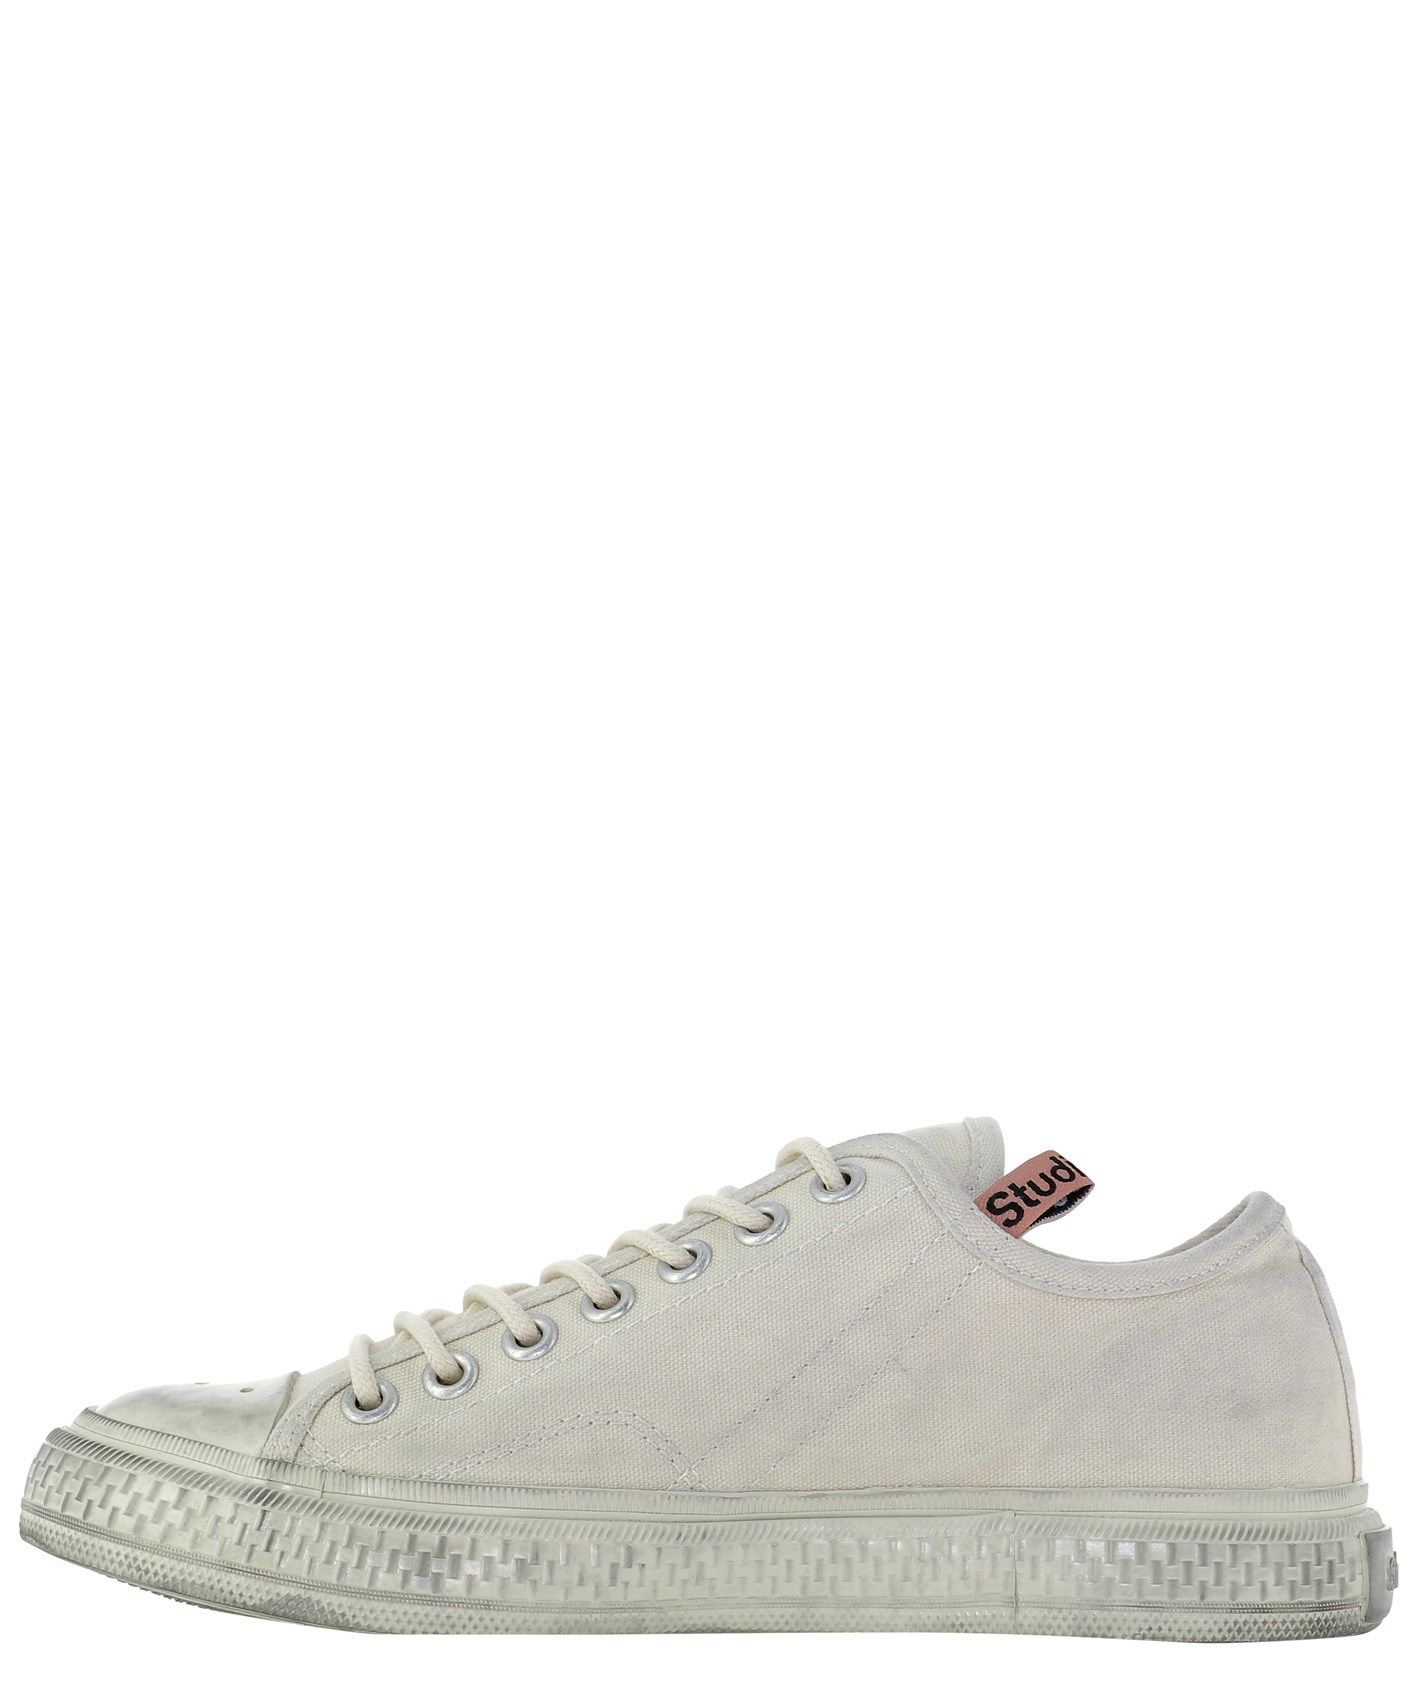 ACNE STUDIOS Low tops ACNE STUDIOS WOMEN'S WHITE OTHER MATERIALS SNEAKERS